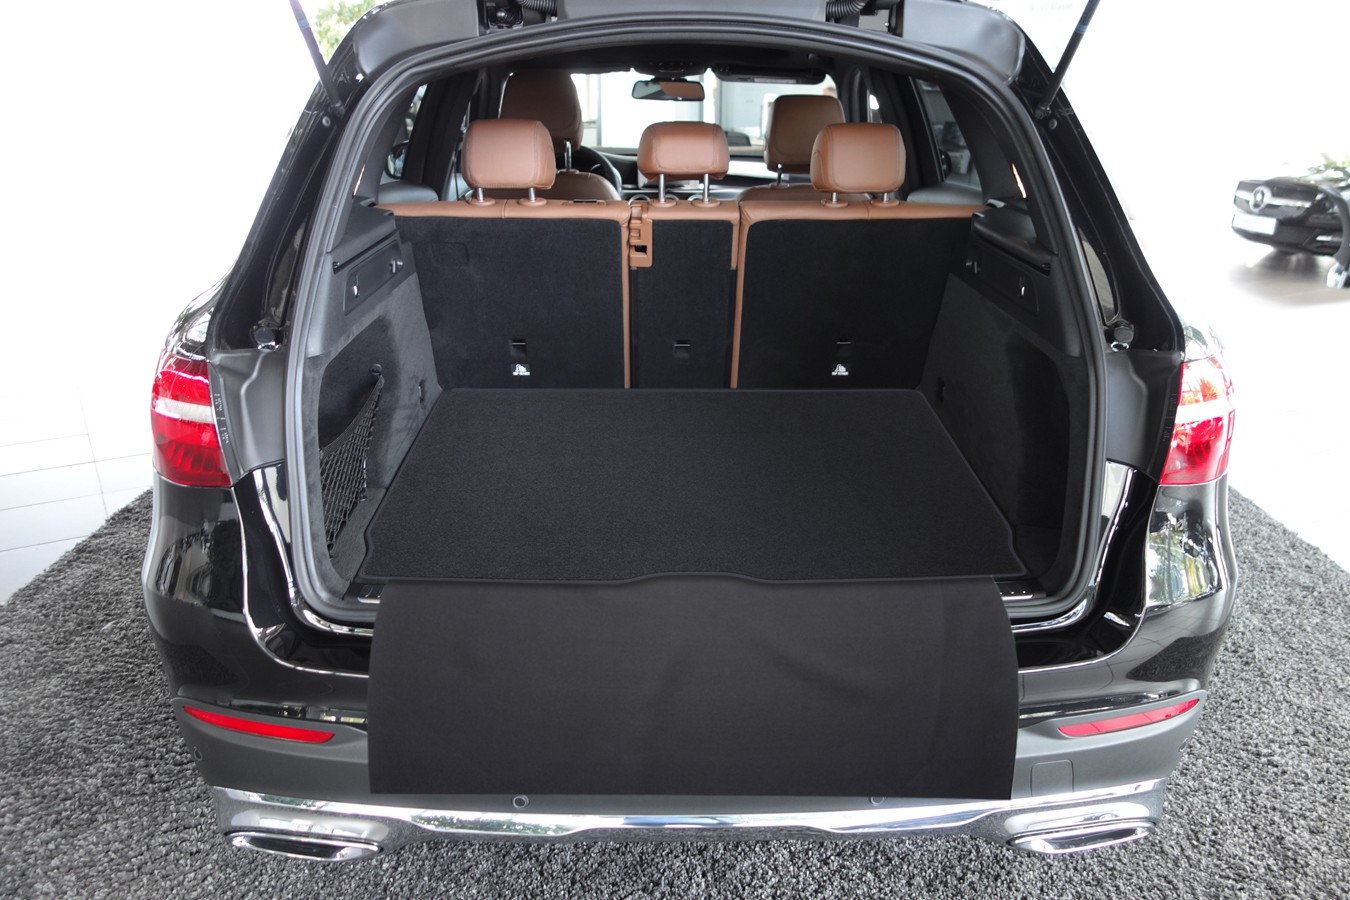 tapis pour coffre de voiture 28 images organiseur de coffre arri 232 re nissan leaf. Black Bedroom Furniture Sets. Home Design Ideas